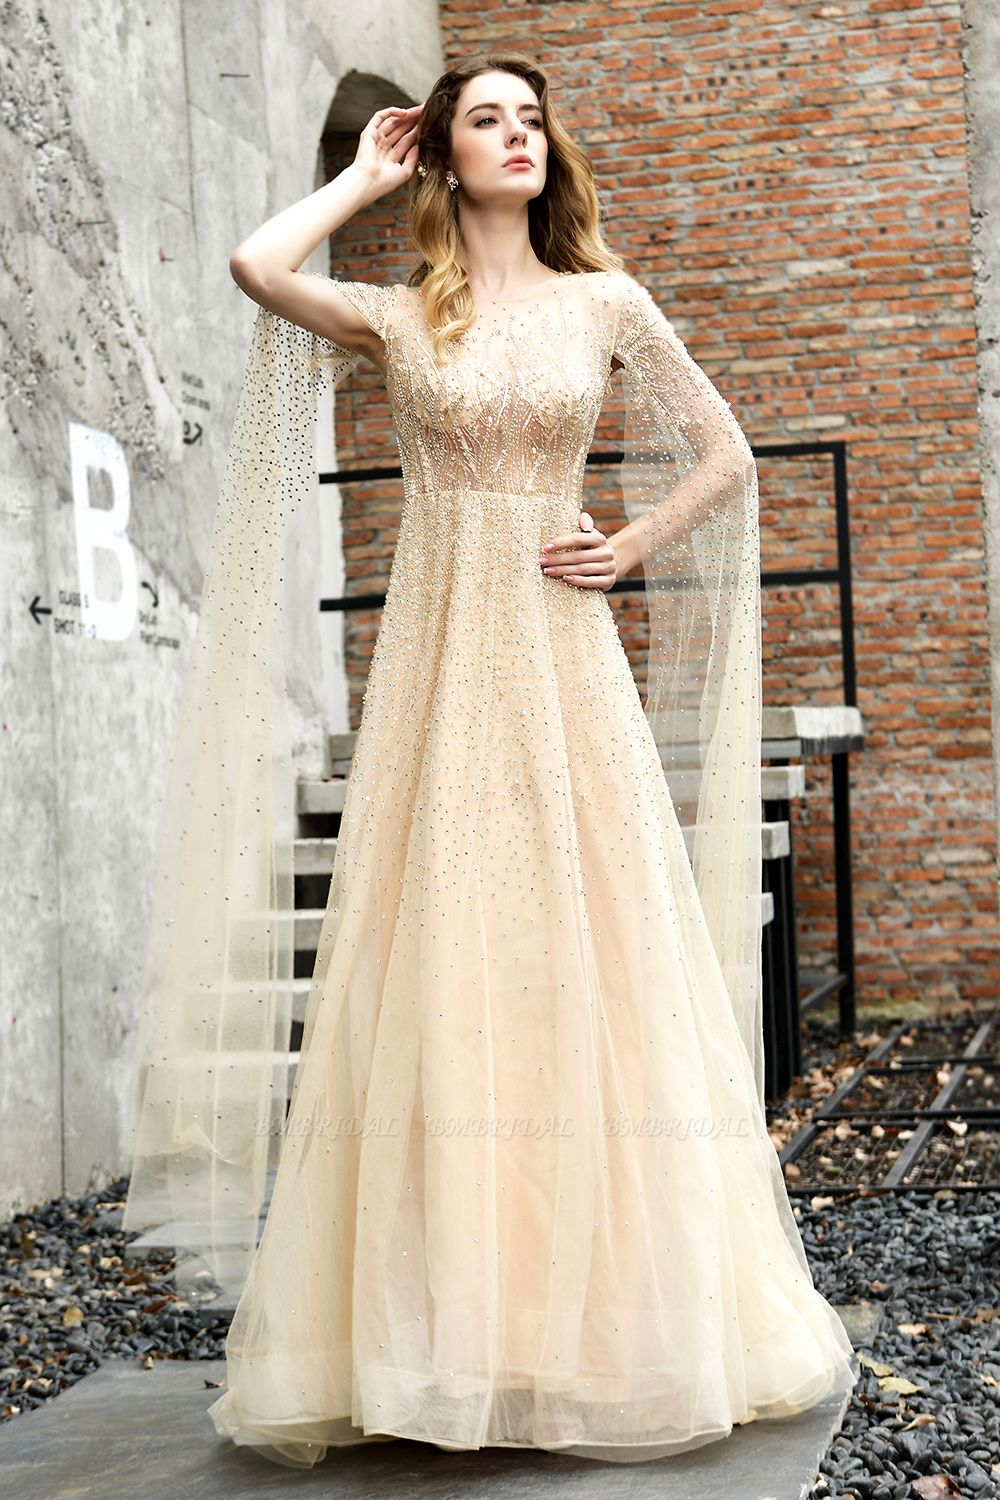 BMbridal Luxurious Tulle Crystals Long Prom Dress Online With Ruffle Sleeves